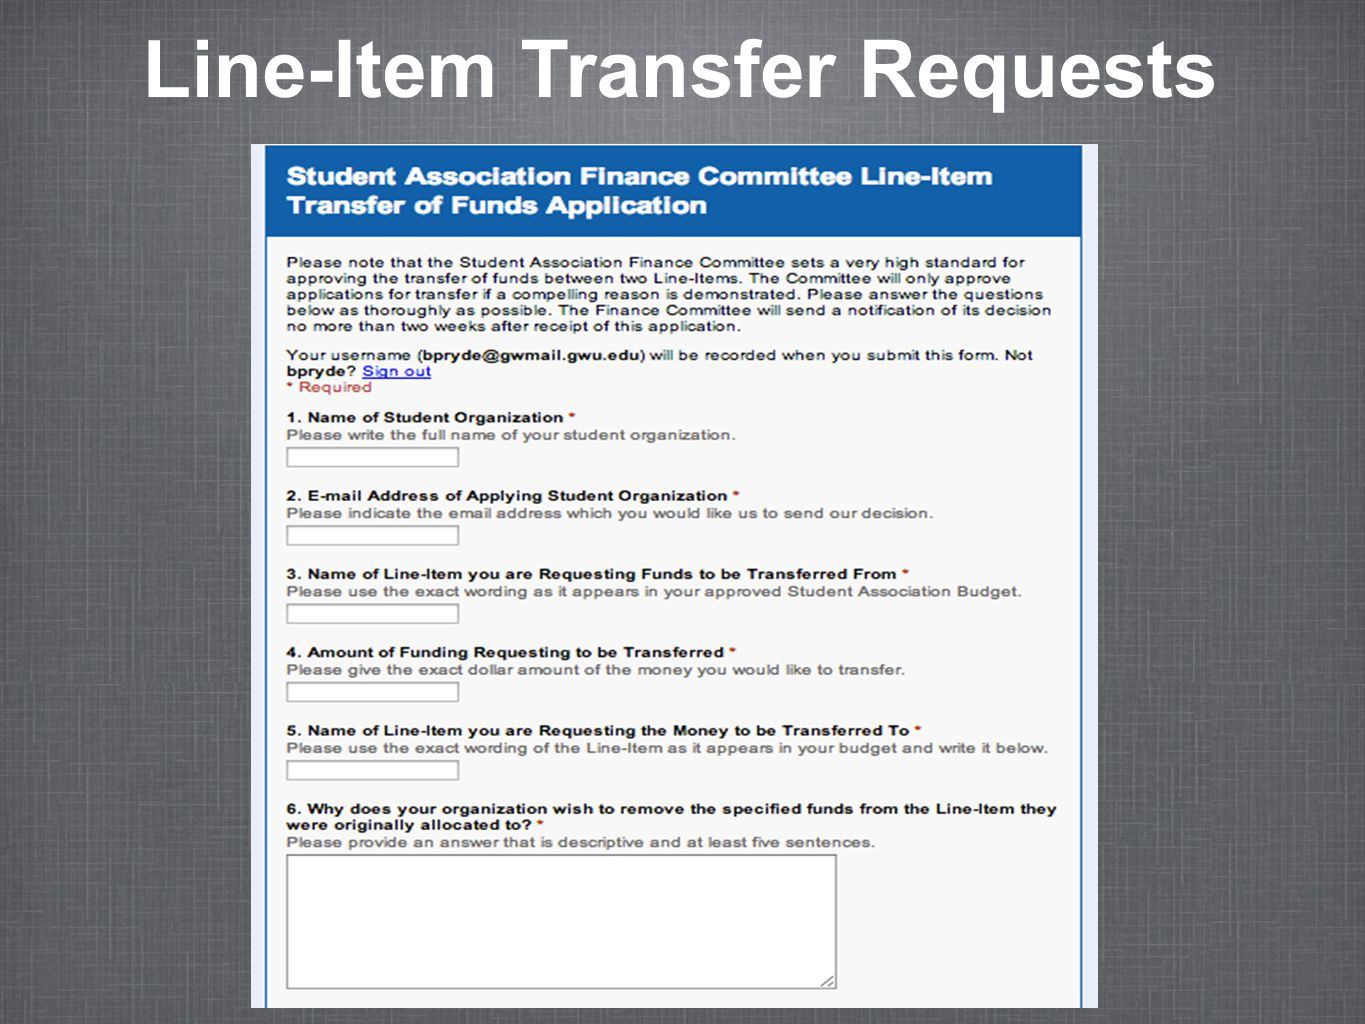 Line-Item Transfer Requests